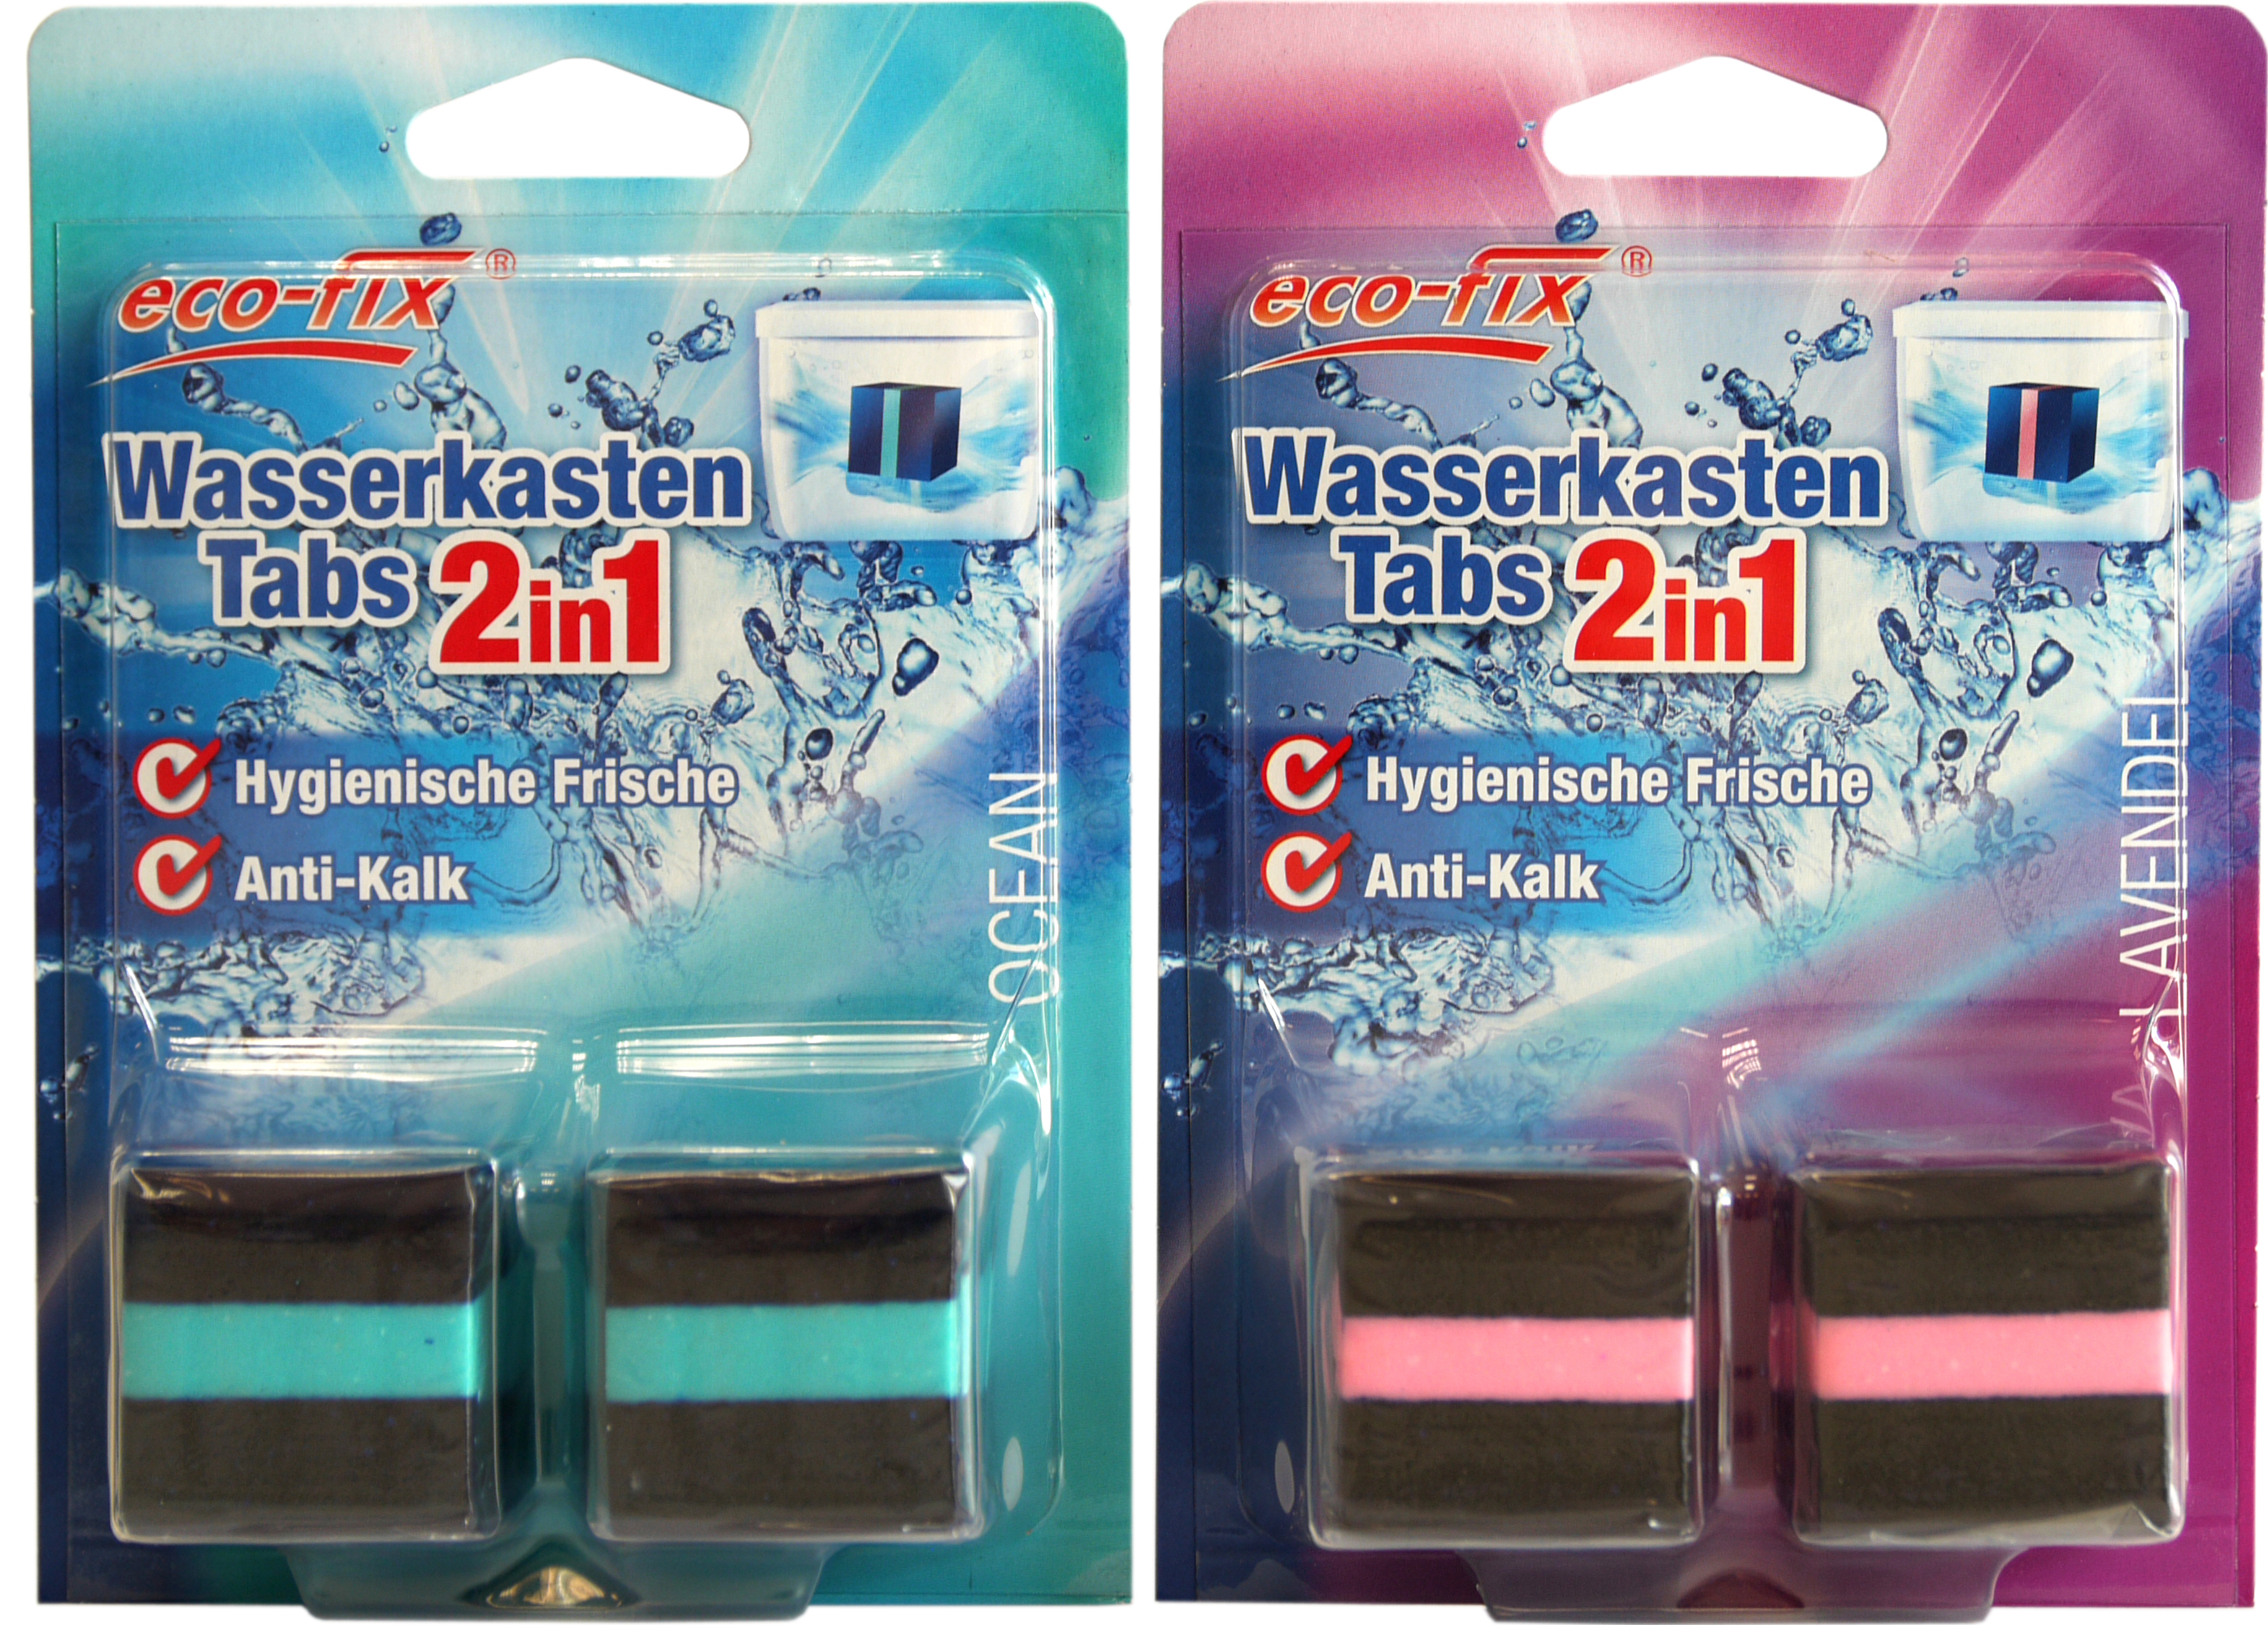 00890 - eco-fix Wasserkasten Tabs